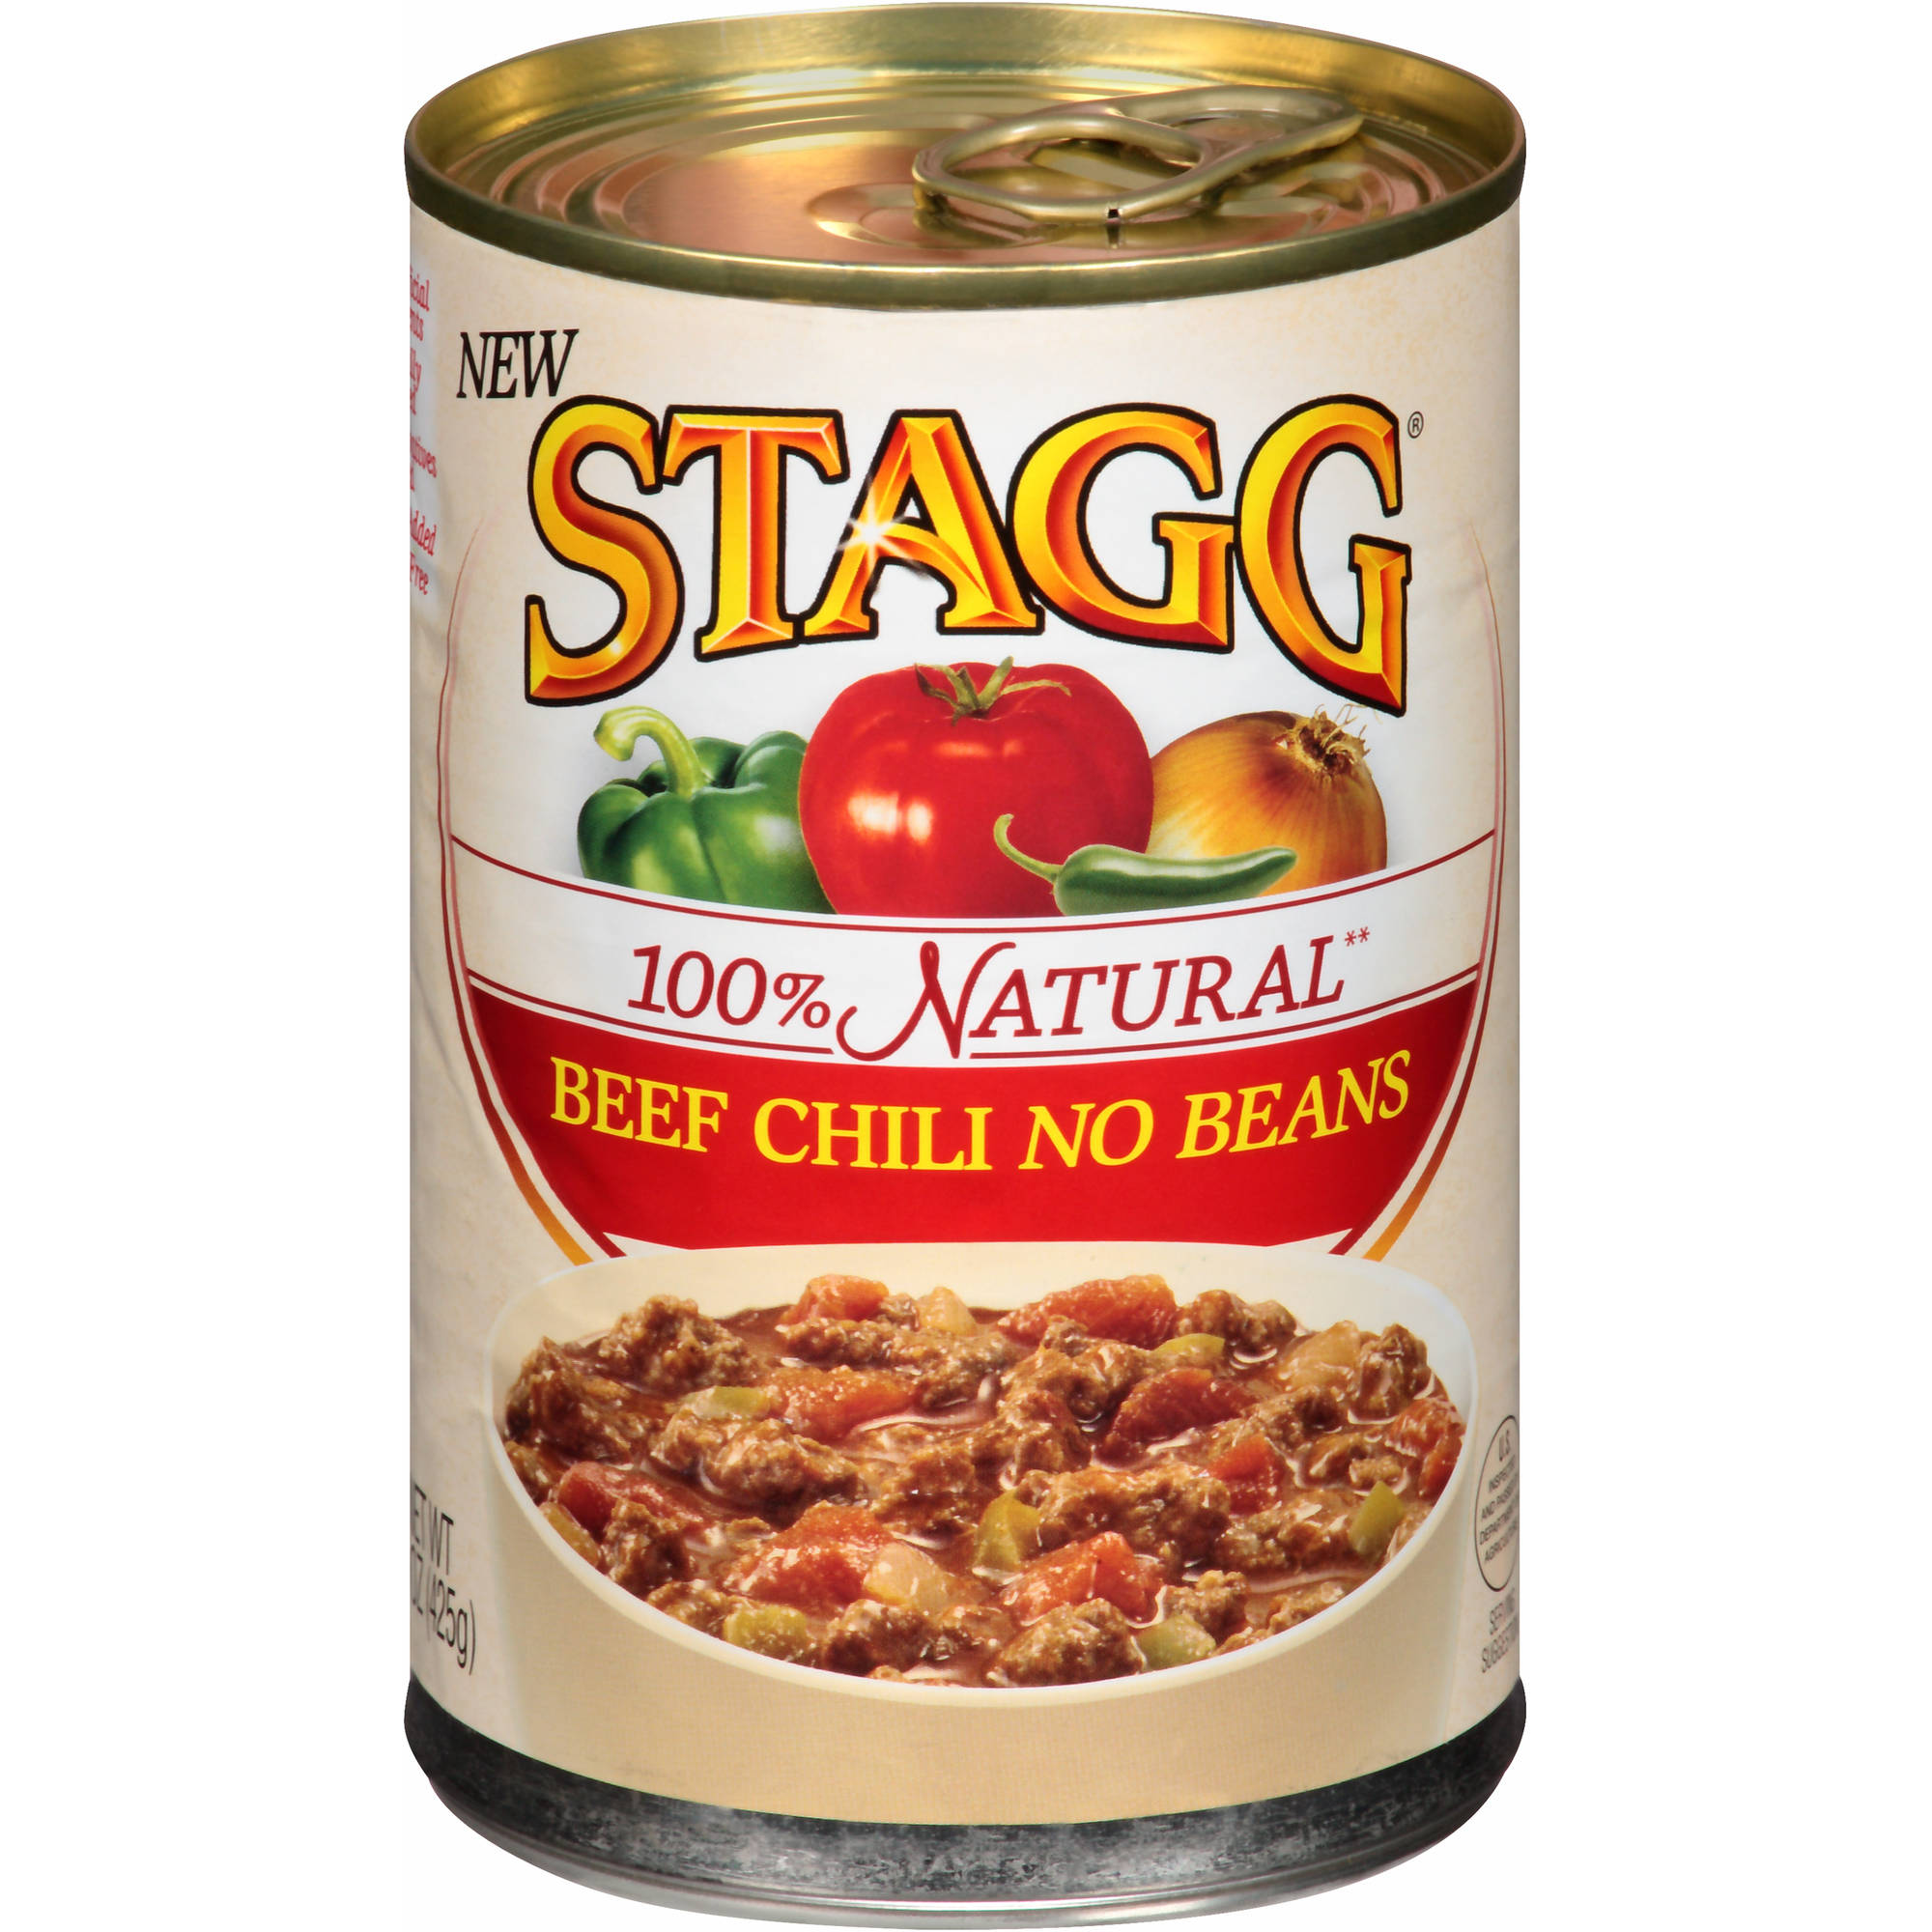 Stagg Beef Chili with No Beans, 15 oz